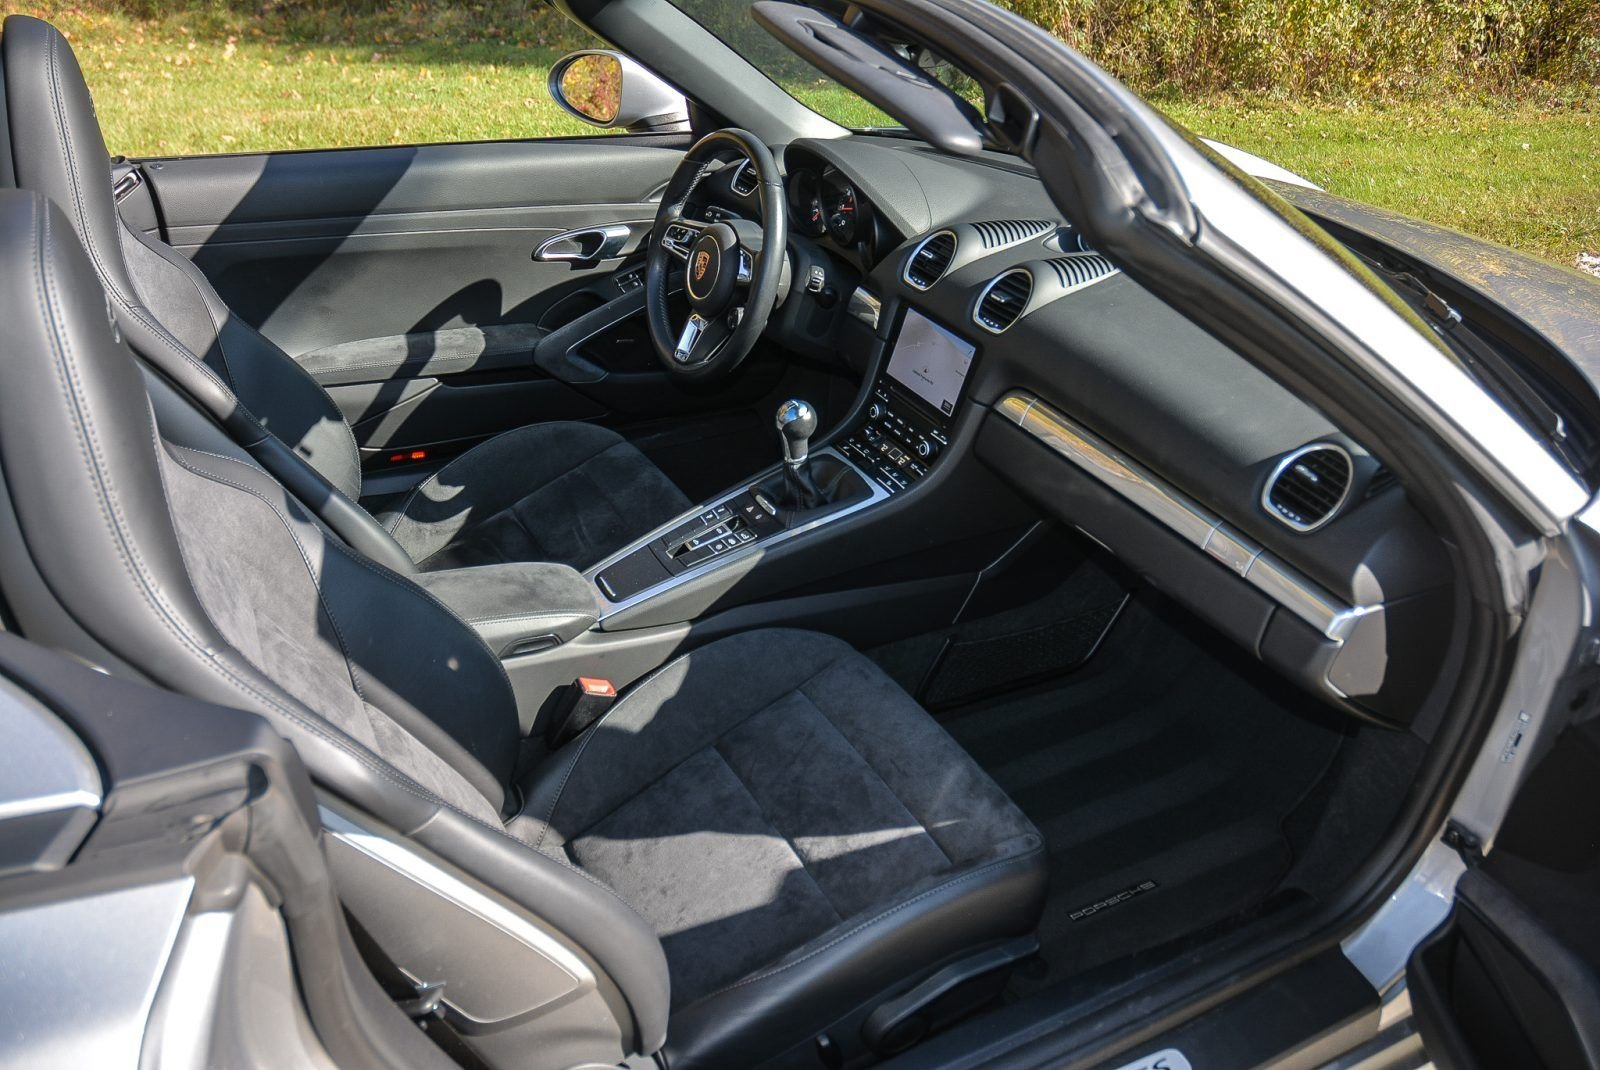 2019 Porsche 718 Boxster GTS - Manual 9.9k miles Silver $ For Sale (picture 5 of 6)